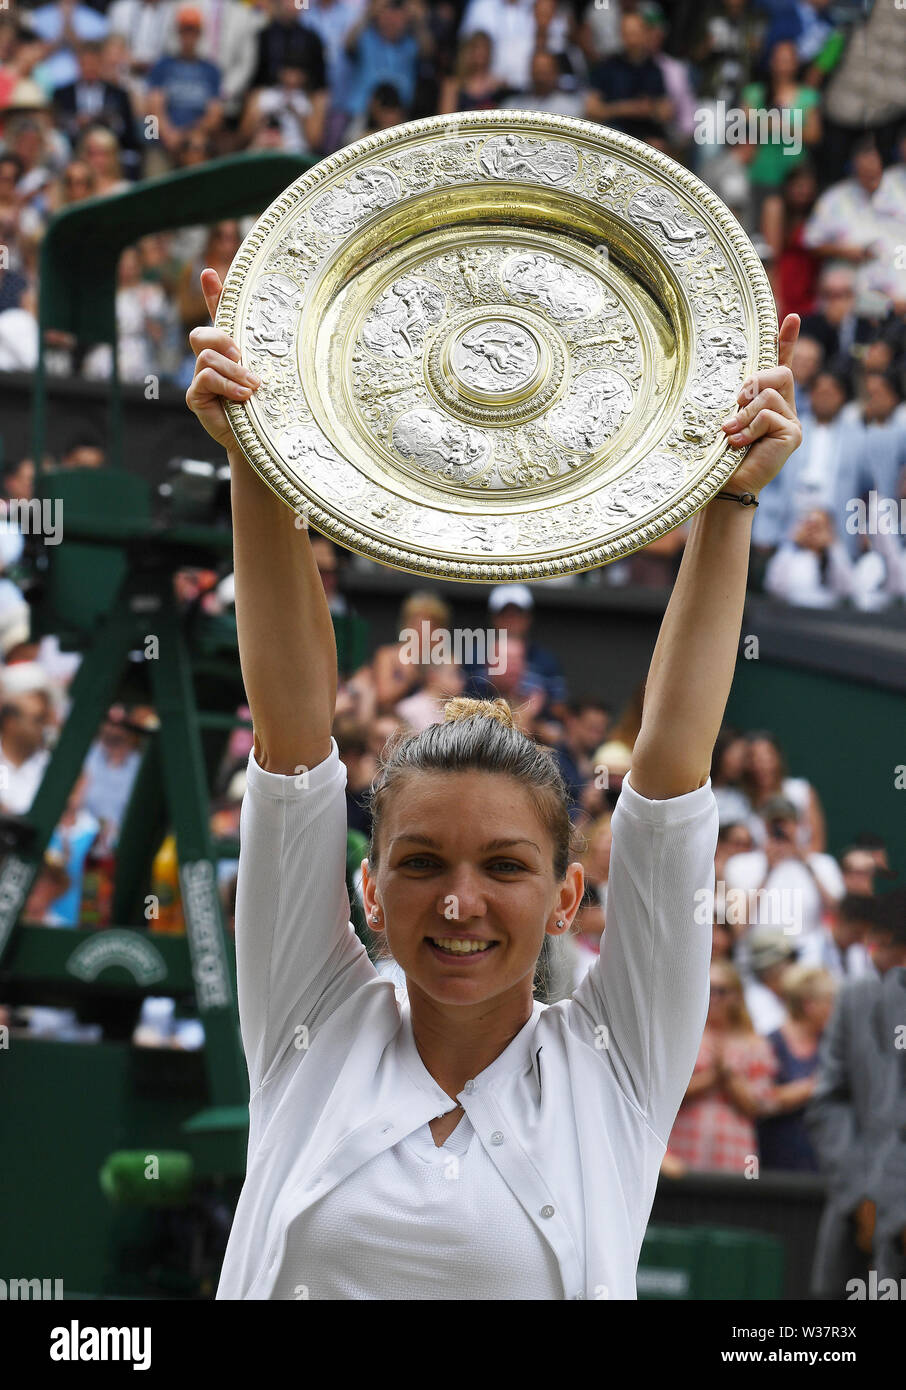 London, UK. 13th July, 2019. The Championships Wimbledon 2019 13072019 Simona Halep lifts winners trophy the Venus rosewater Dish after she wins Ladies Singles Final Credit: Roger Parker/Alamy Live News - Stock Image